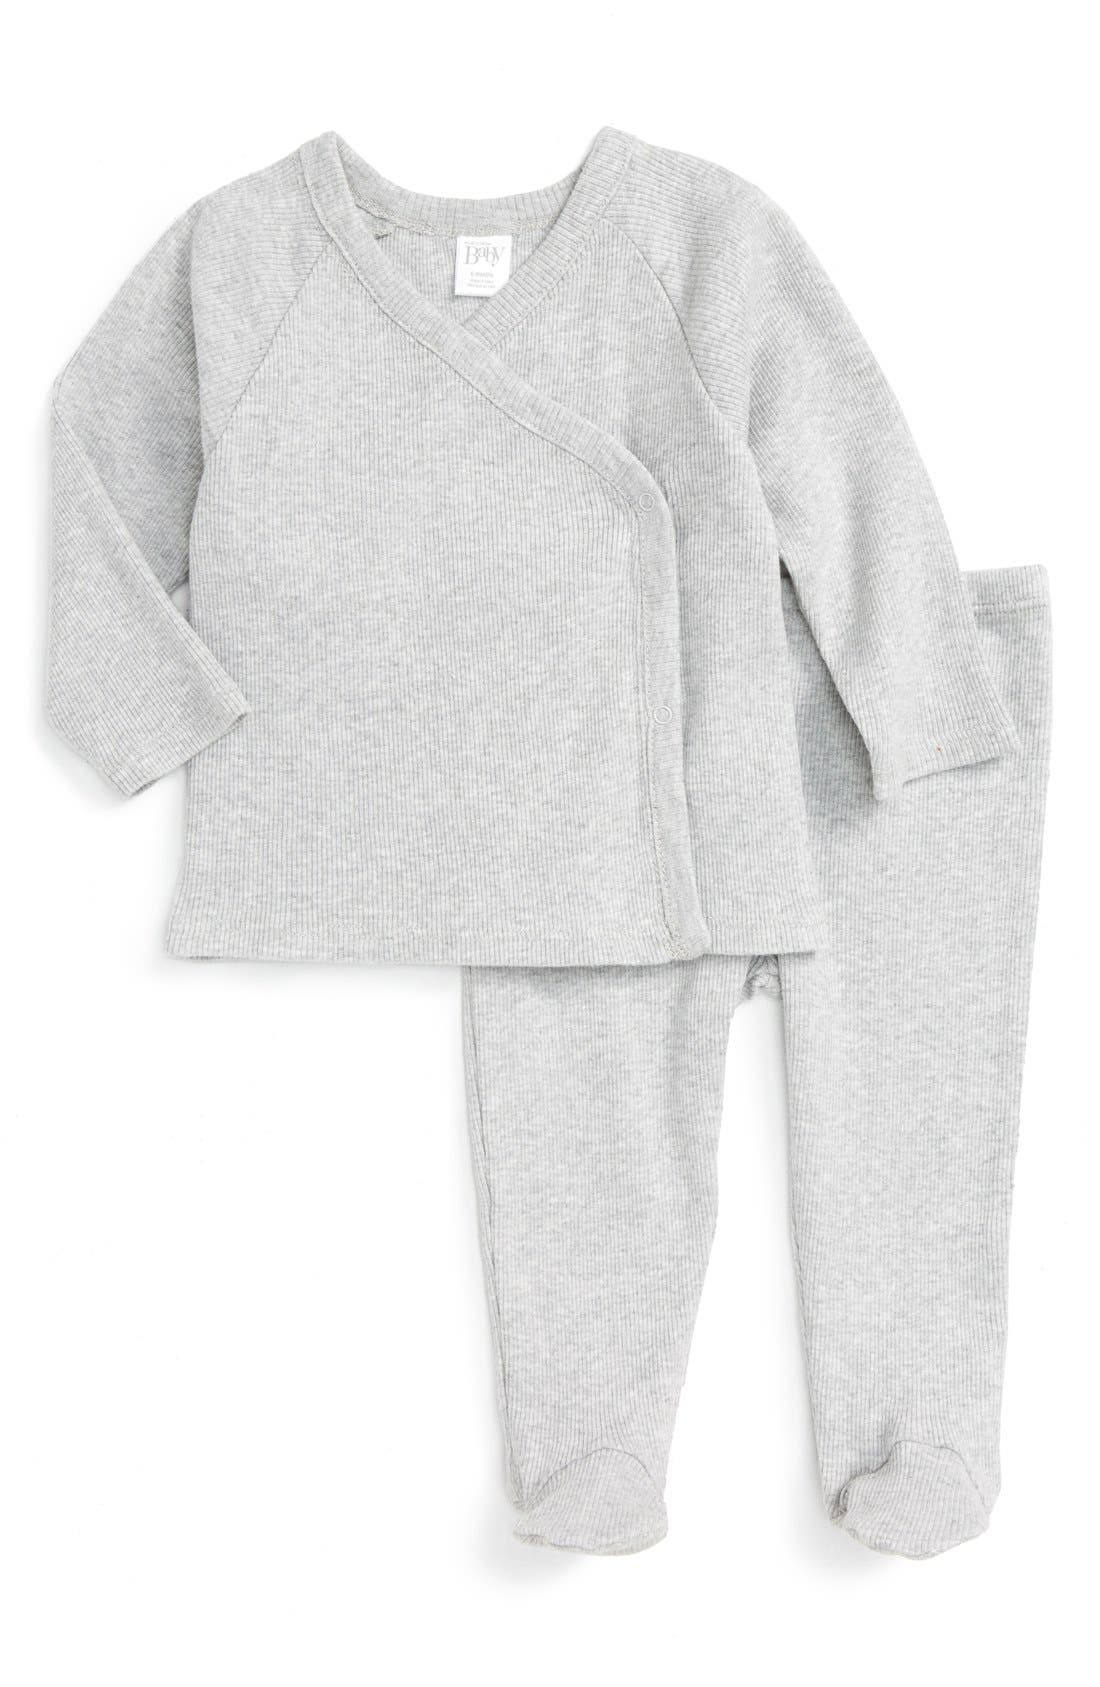 Main Image - Nordstrom Baby Rib Knit T-Shirt & Pants Set (Baby)